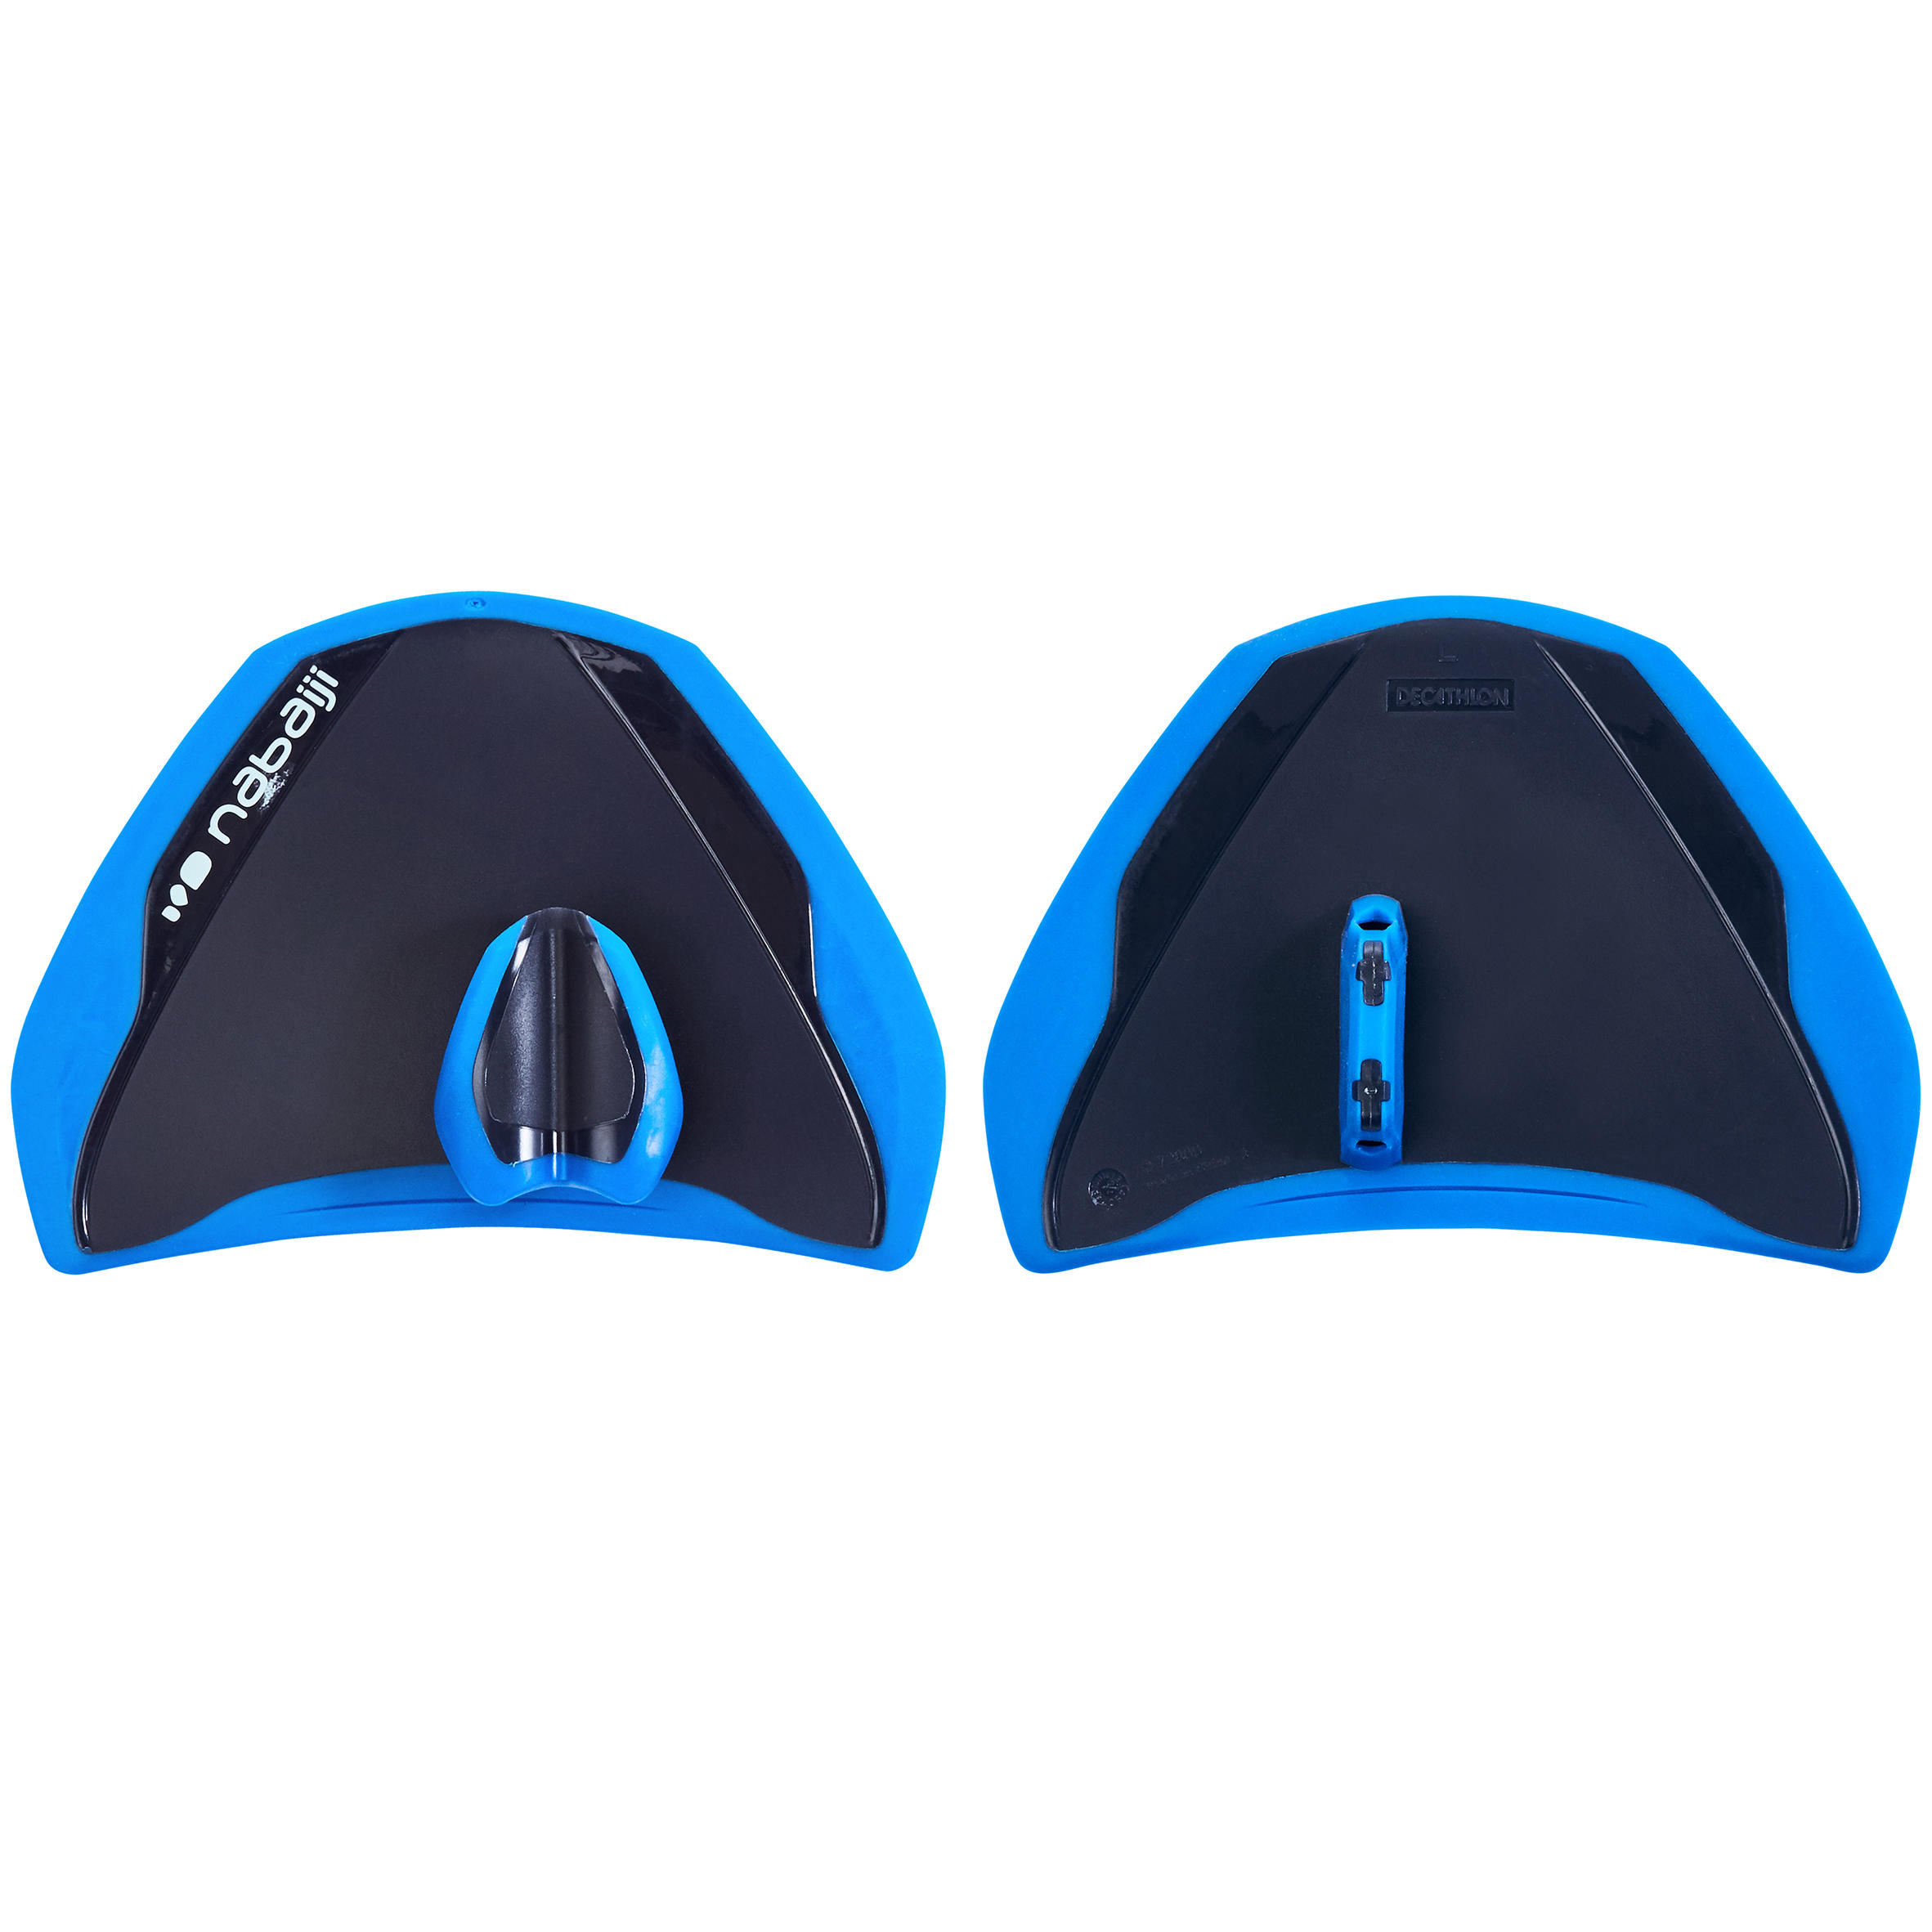 QUICK'IN Finger Paddle Swimming Paddles - Blue